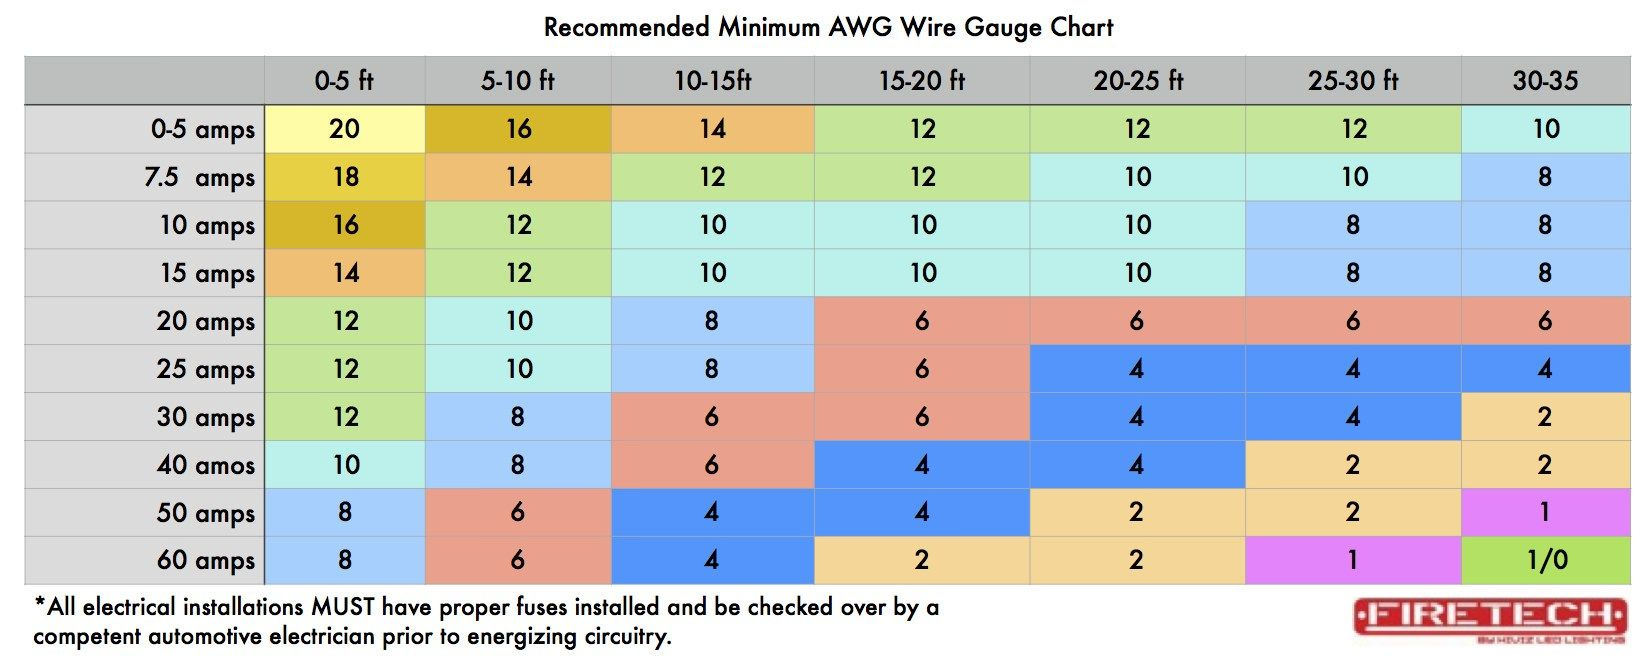 Image result for wire size chart sizing charts pinterest chart image result for wire size chart keyboard keysfo